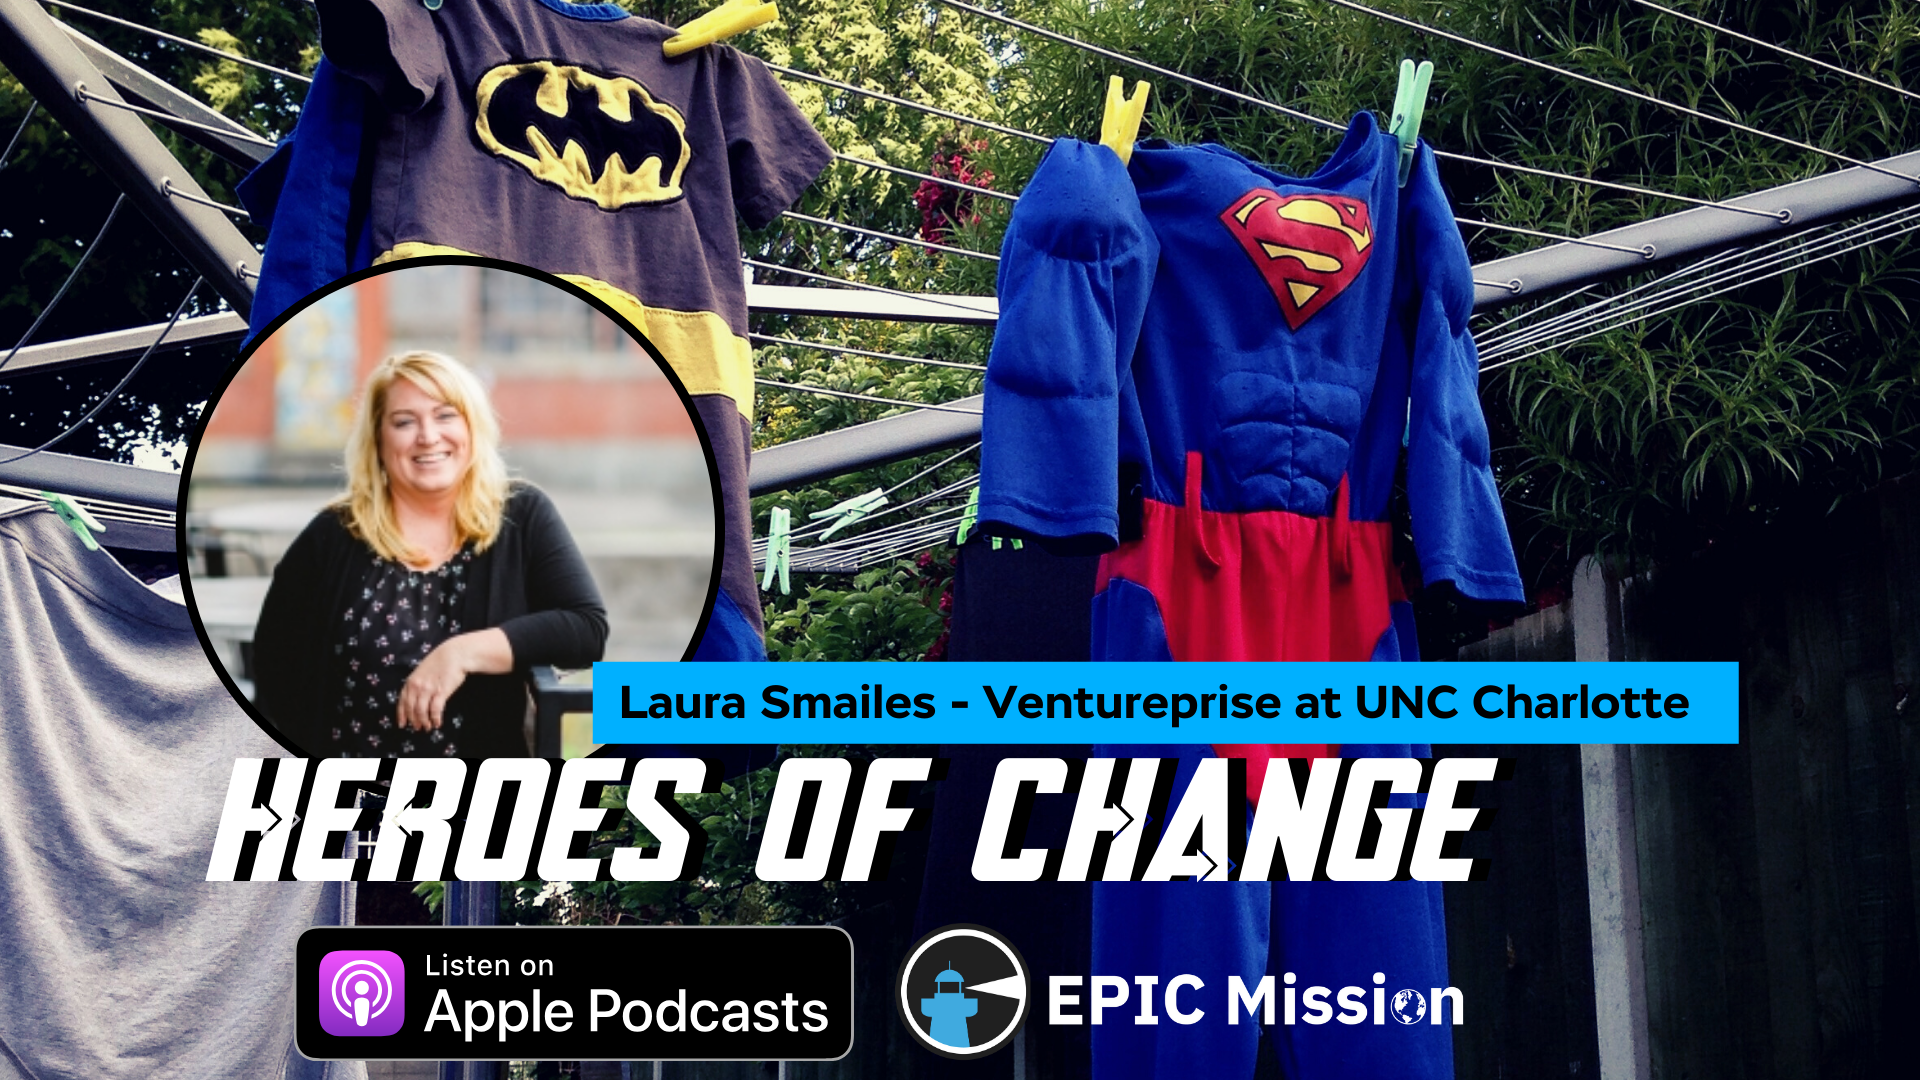 Heroes of Change: with Laura Smailes of Ventureprise at UNC Charlotte